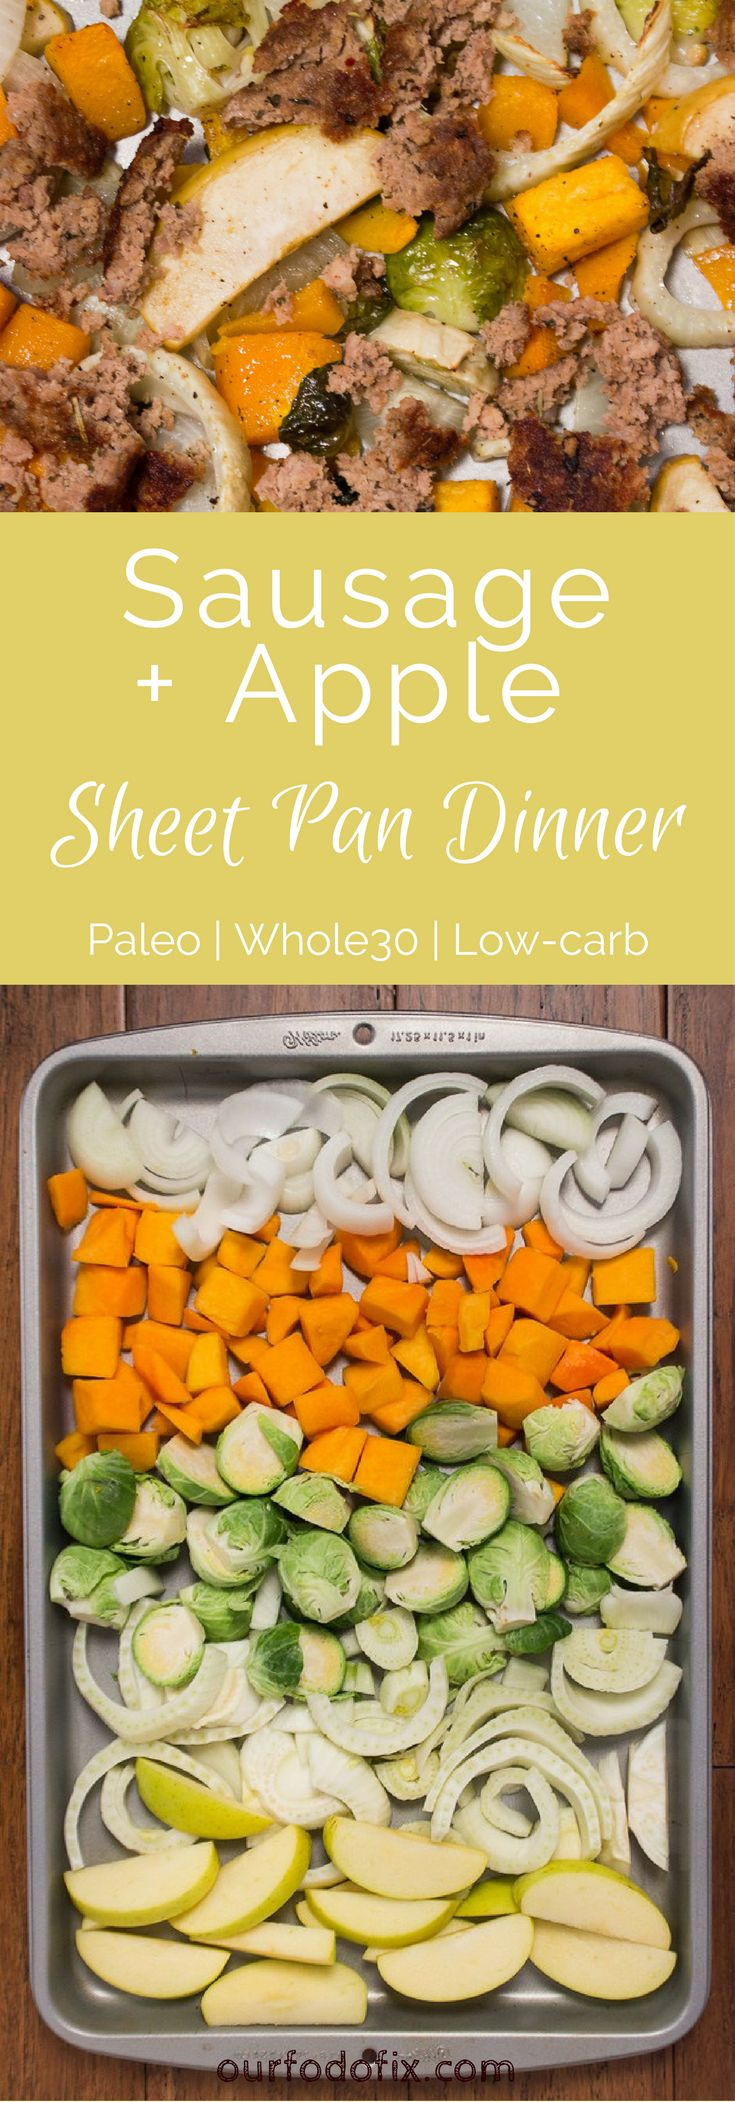 An entire fall dinner made entirely in one pan. Paleo recipes | Whole30 recipes | Dinner recipes | One pan meals | Quick dinner | Fall recipes | Easy meals | Pork recipes | Vegan option | Vegetable recipes | Simple recipes